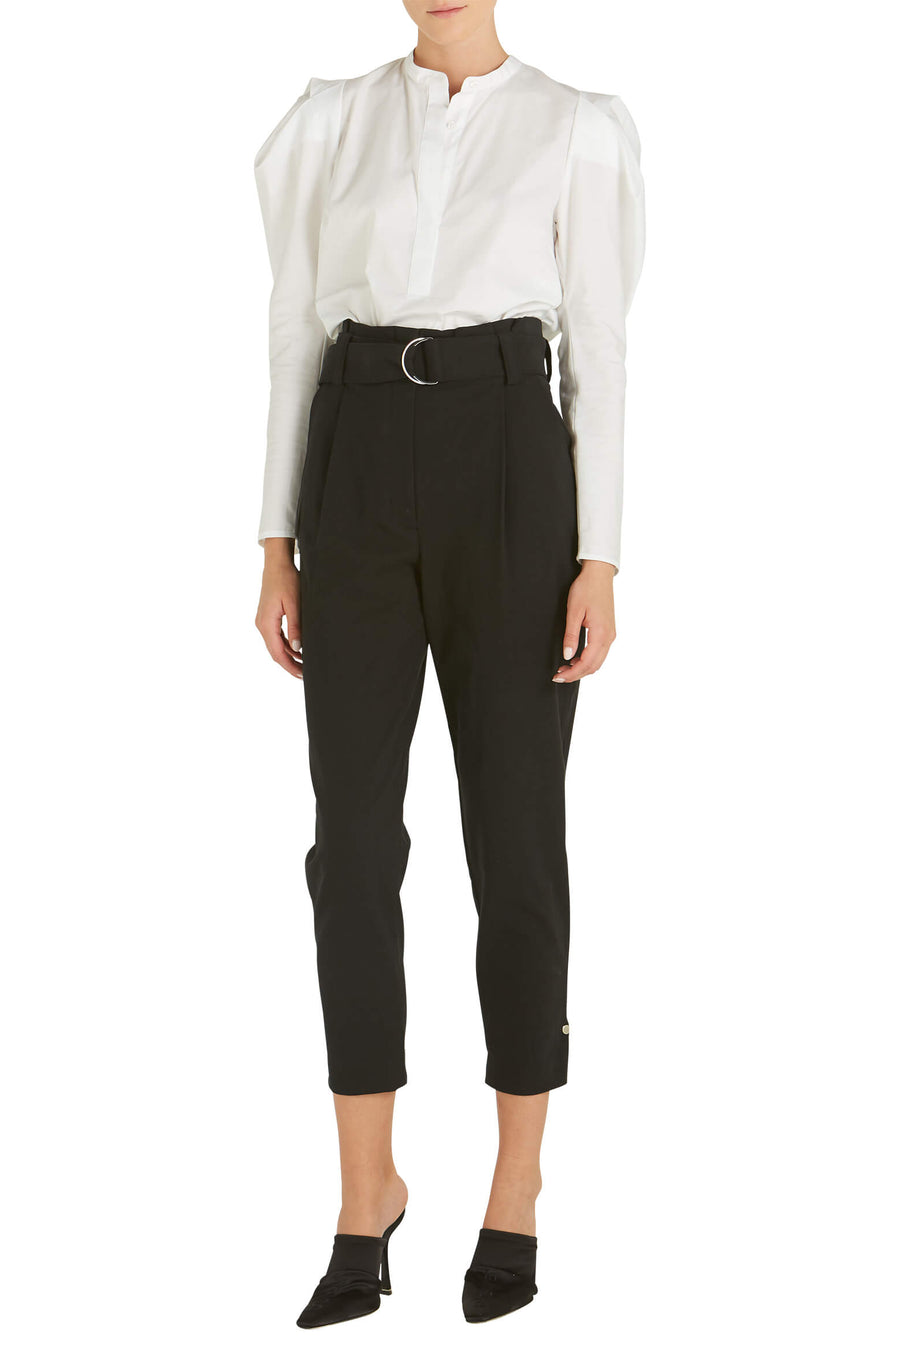 A.LC. Diego Pant Black | The New Trend  Edit alt text